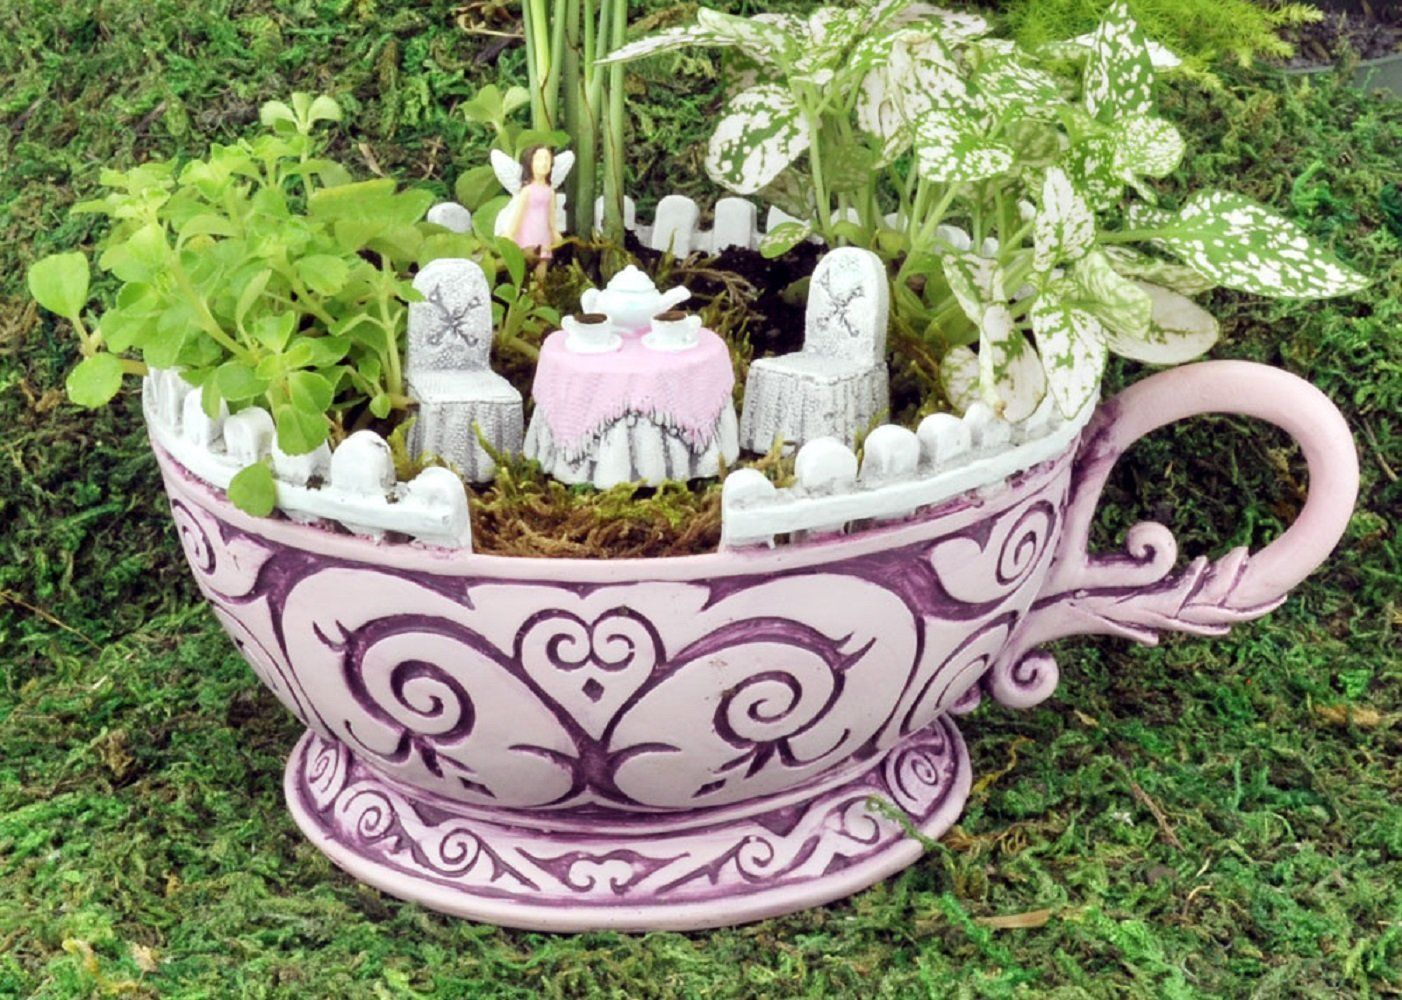 Lovely Georgetown Home And Garden Fairy #17 - Amazon.com: Georgetown Home U0026 Garden, Fiddlehead Fairy Garden, Pink Teacup  Planter